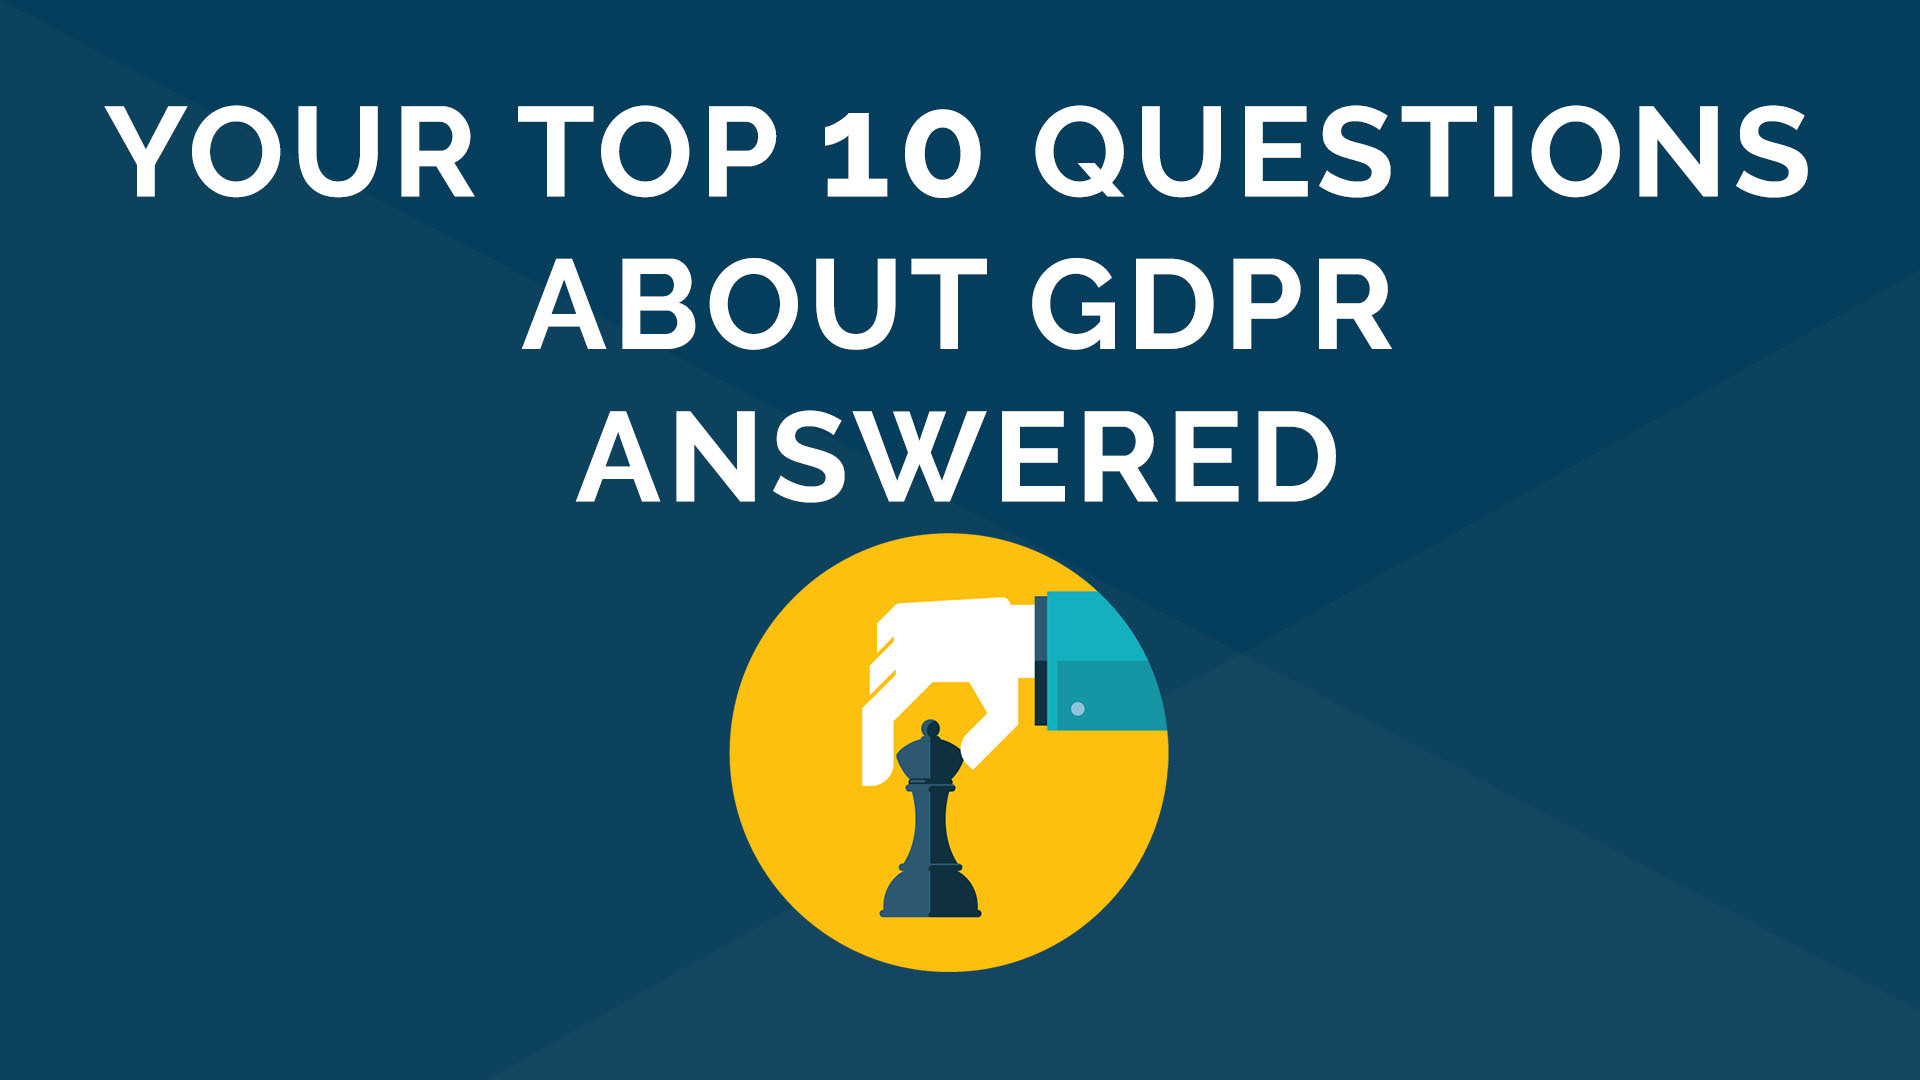 GDPR - Top 10 Questions Answered